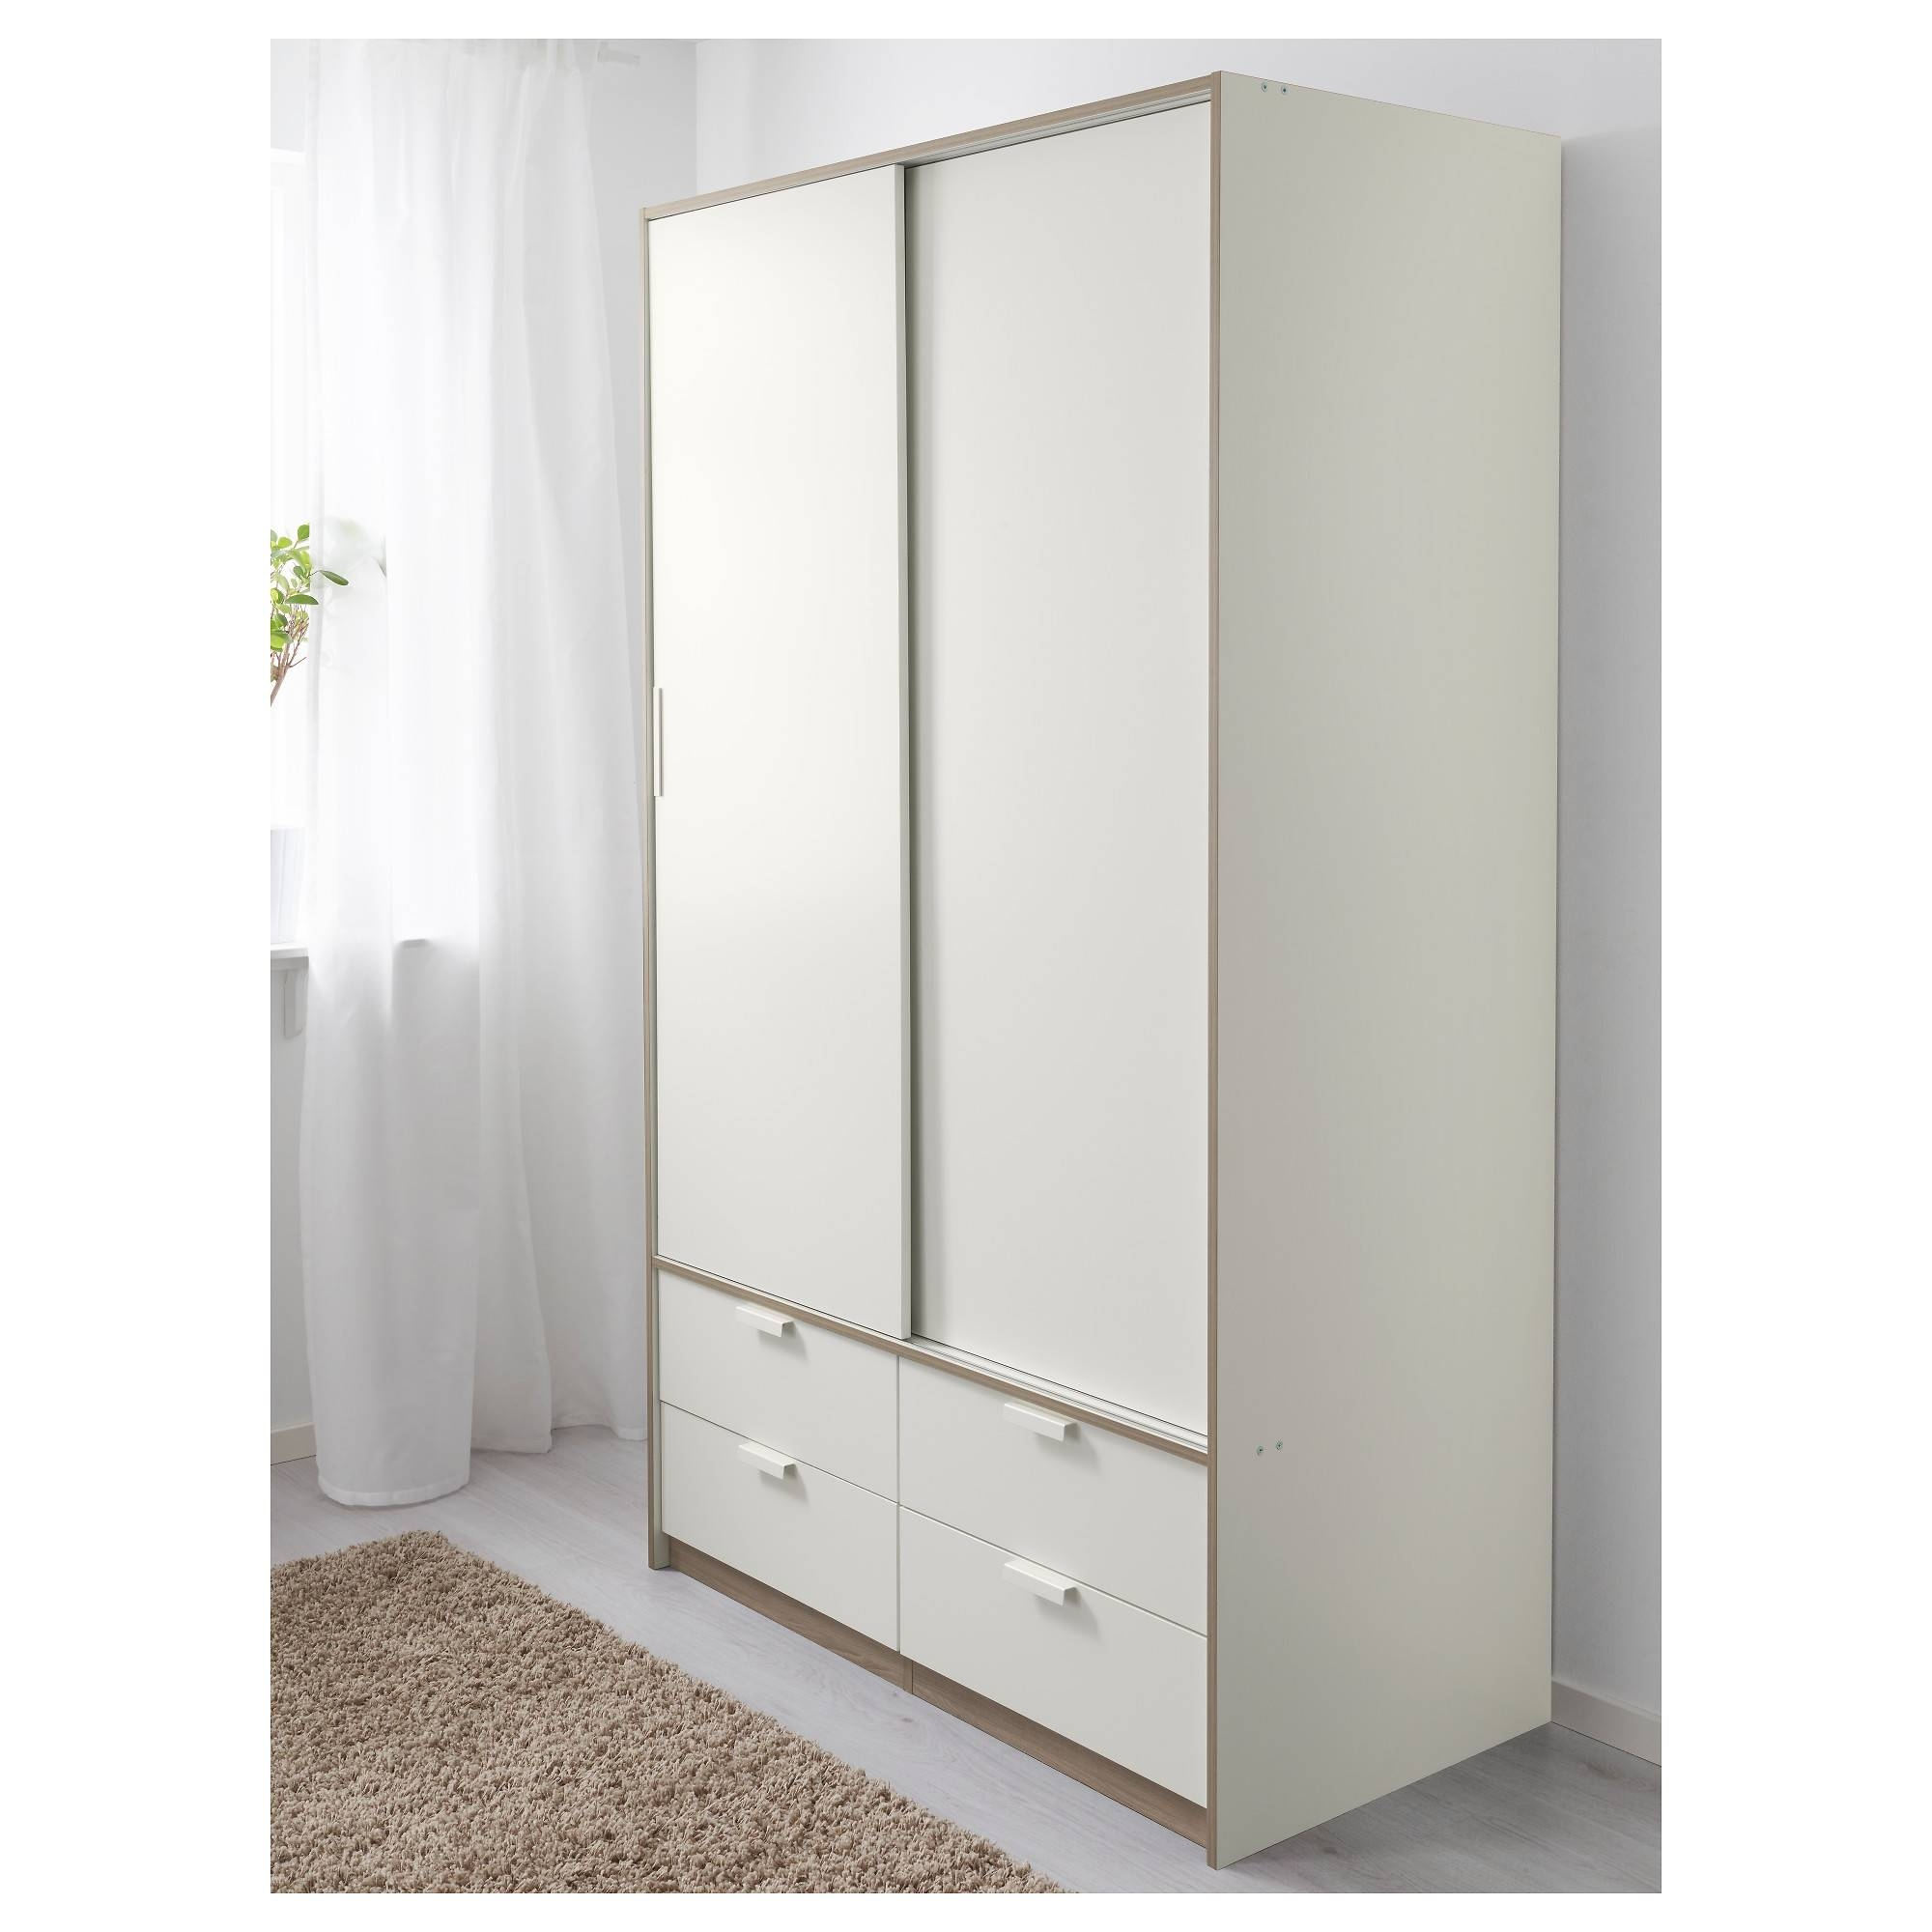 Trysil Wardrobe W Sliding Doors/4 Drawers White 118X61X202 Cm - Ikea intended for 4 Door White Wardrobes (Image 12 of 15)